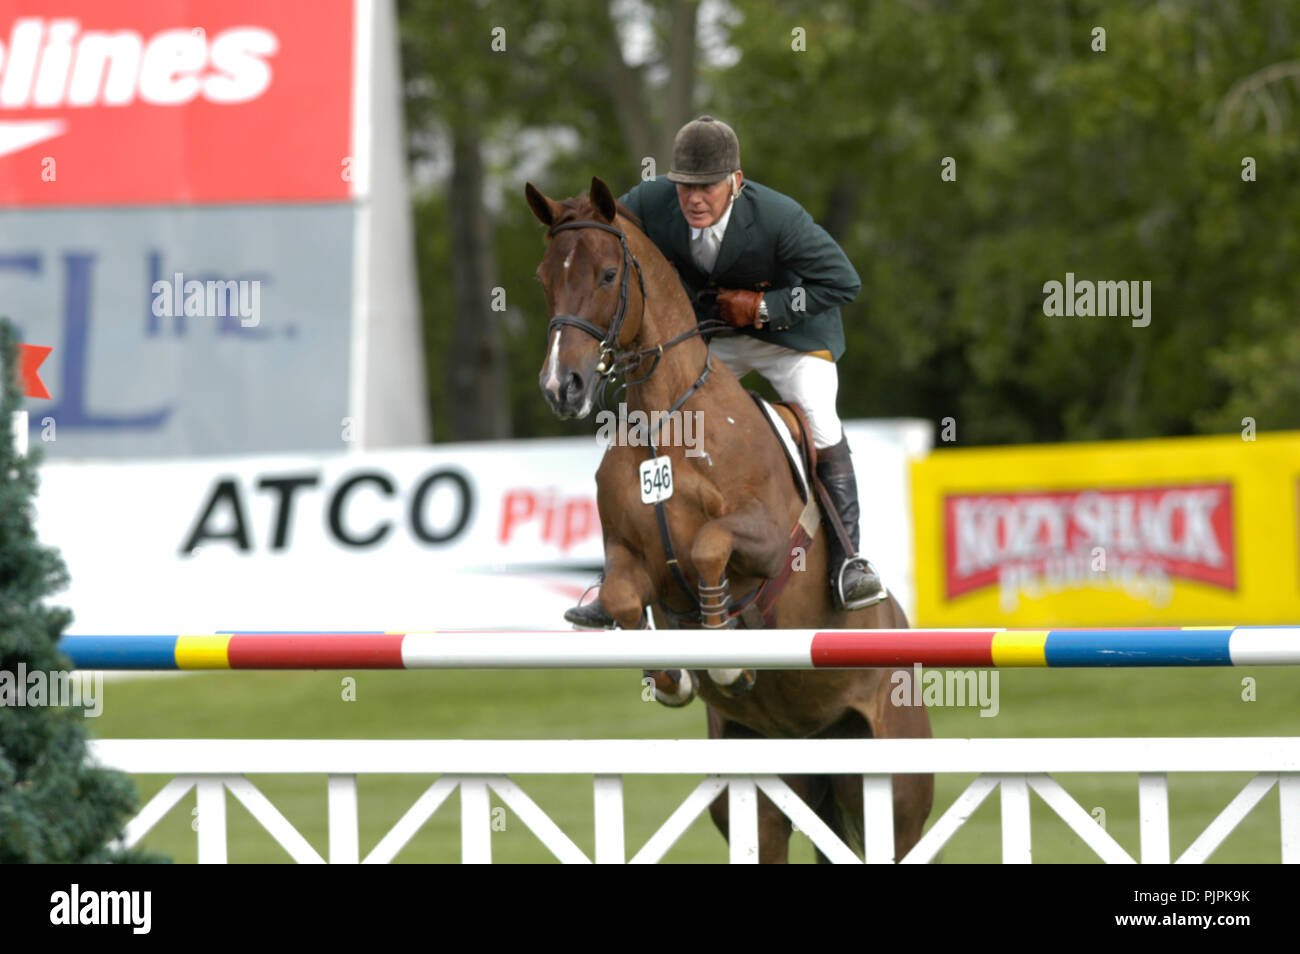 The National, Spruce Meadows June 2002, Eddie Macken (IRE) riding Zeline Stock Photo